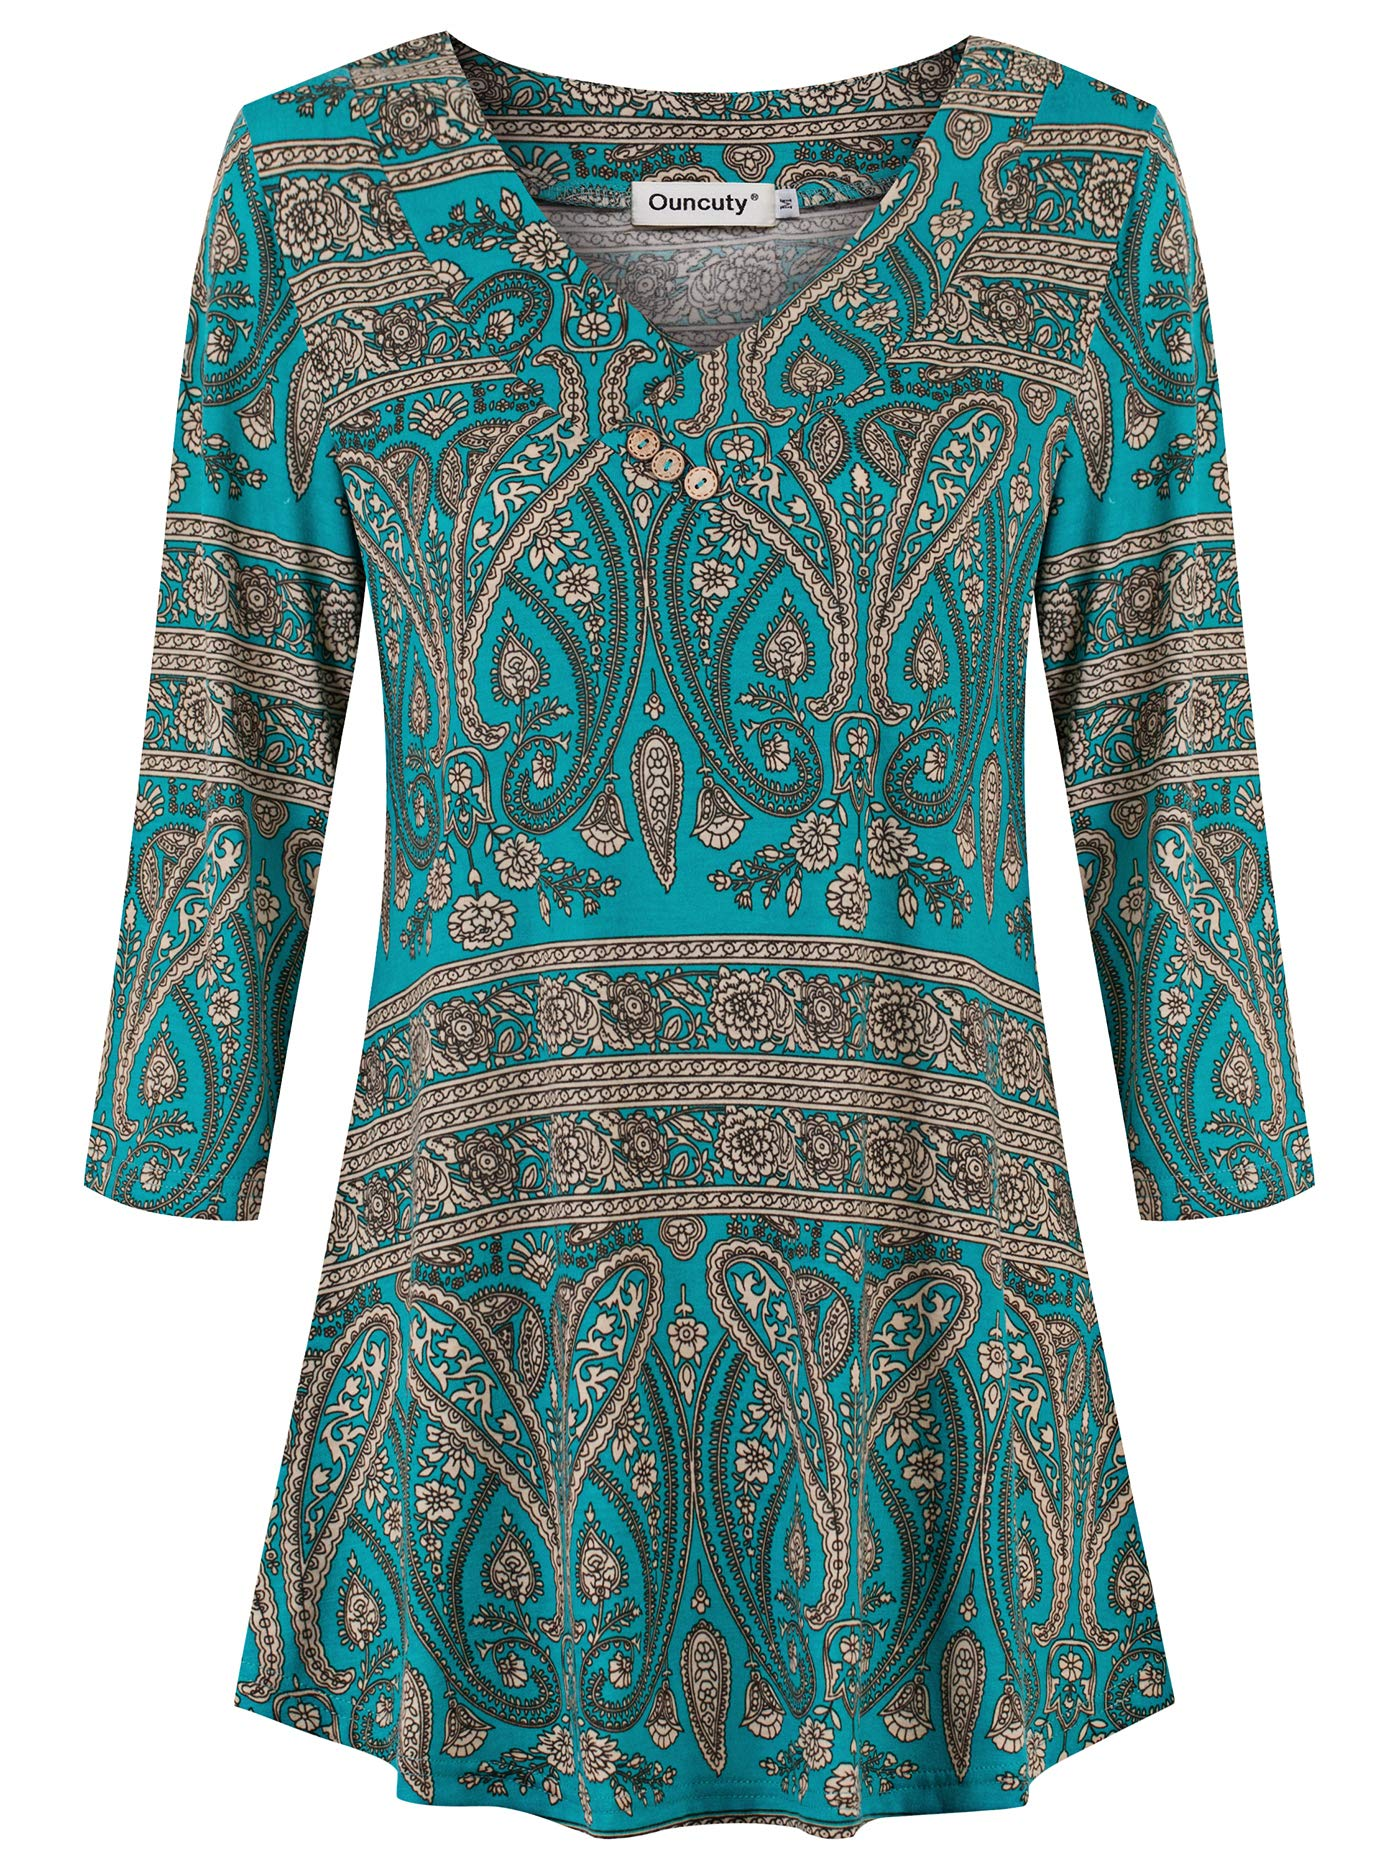 Ouncuty Womens 3/4 Sleeve Shirt Casual V Neck Floral Dressy Tunic Blouse Tops